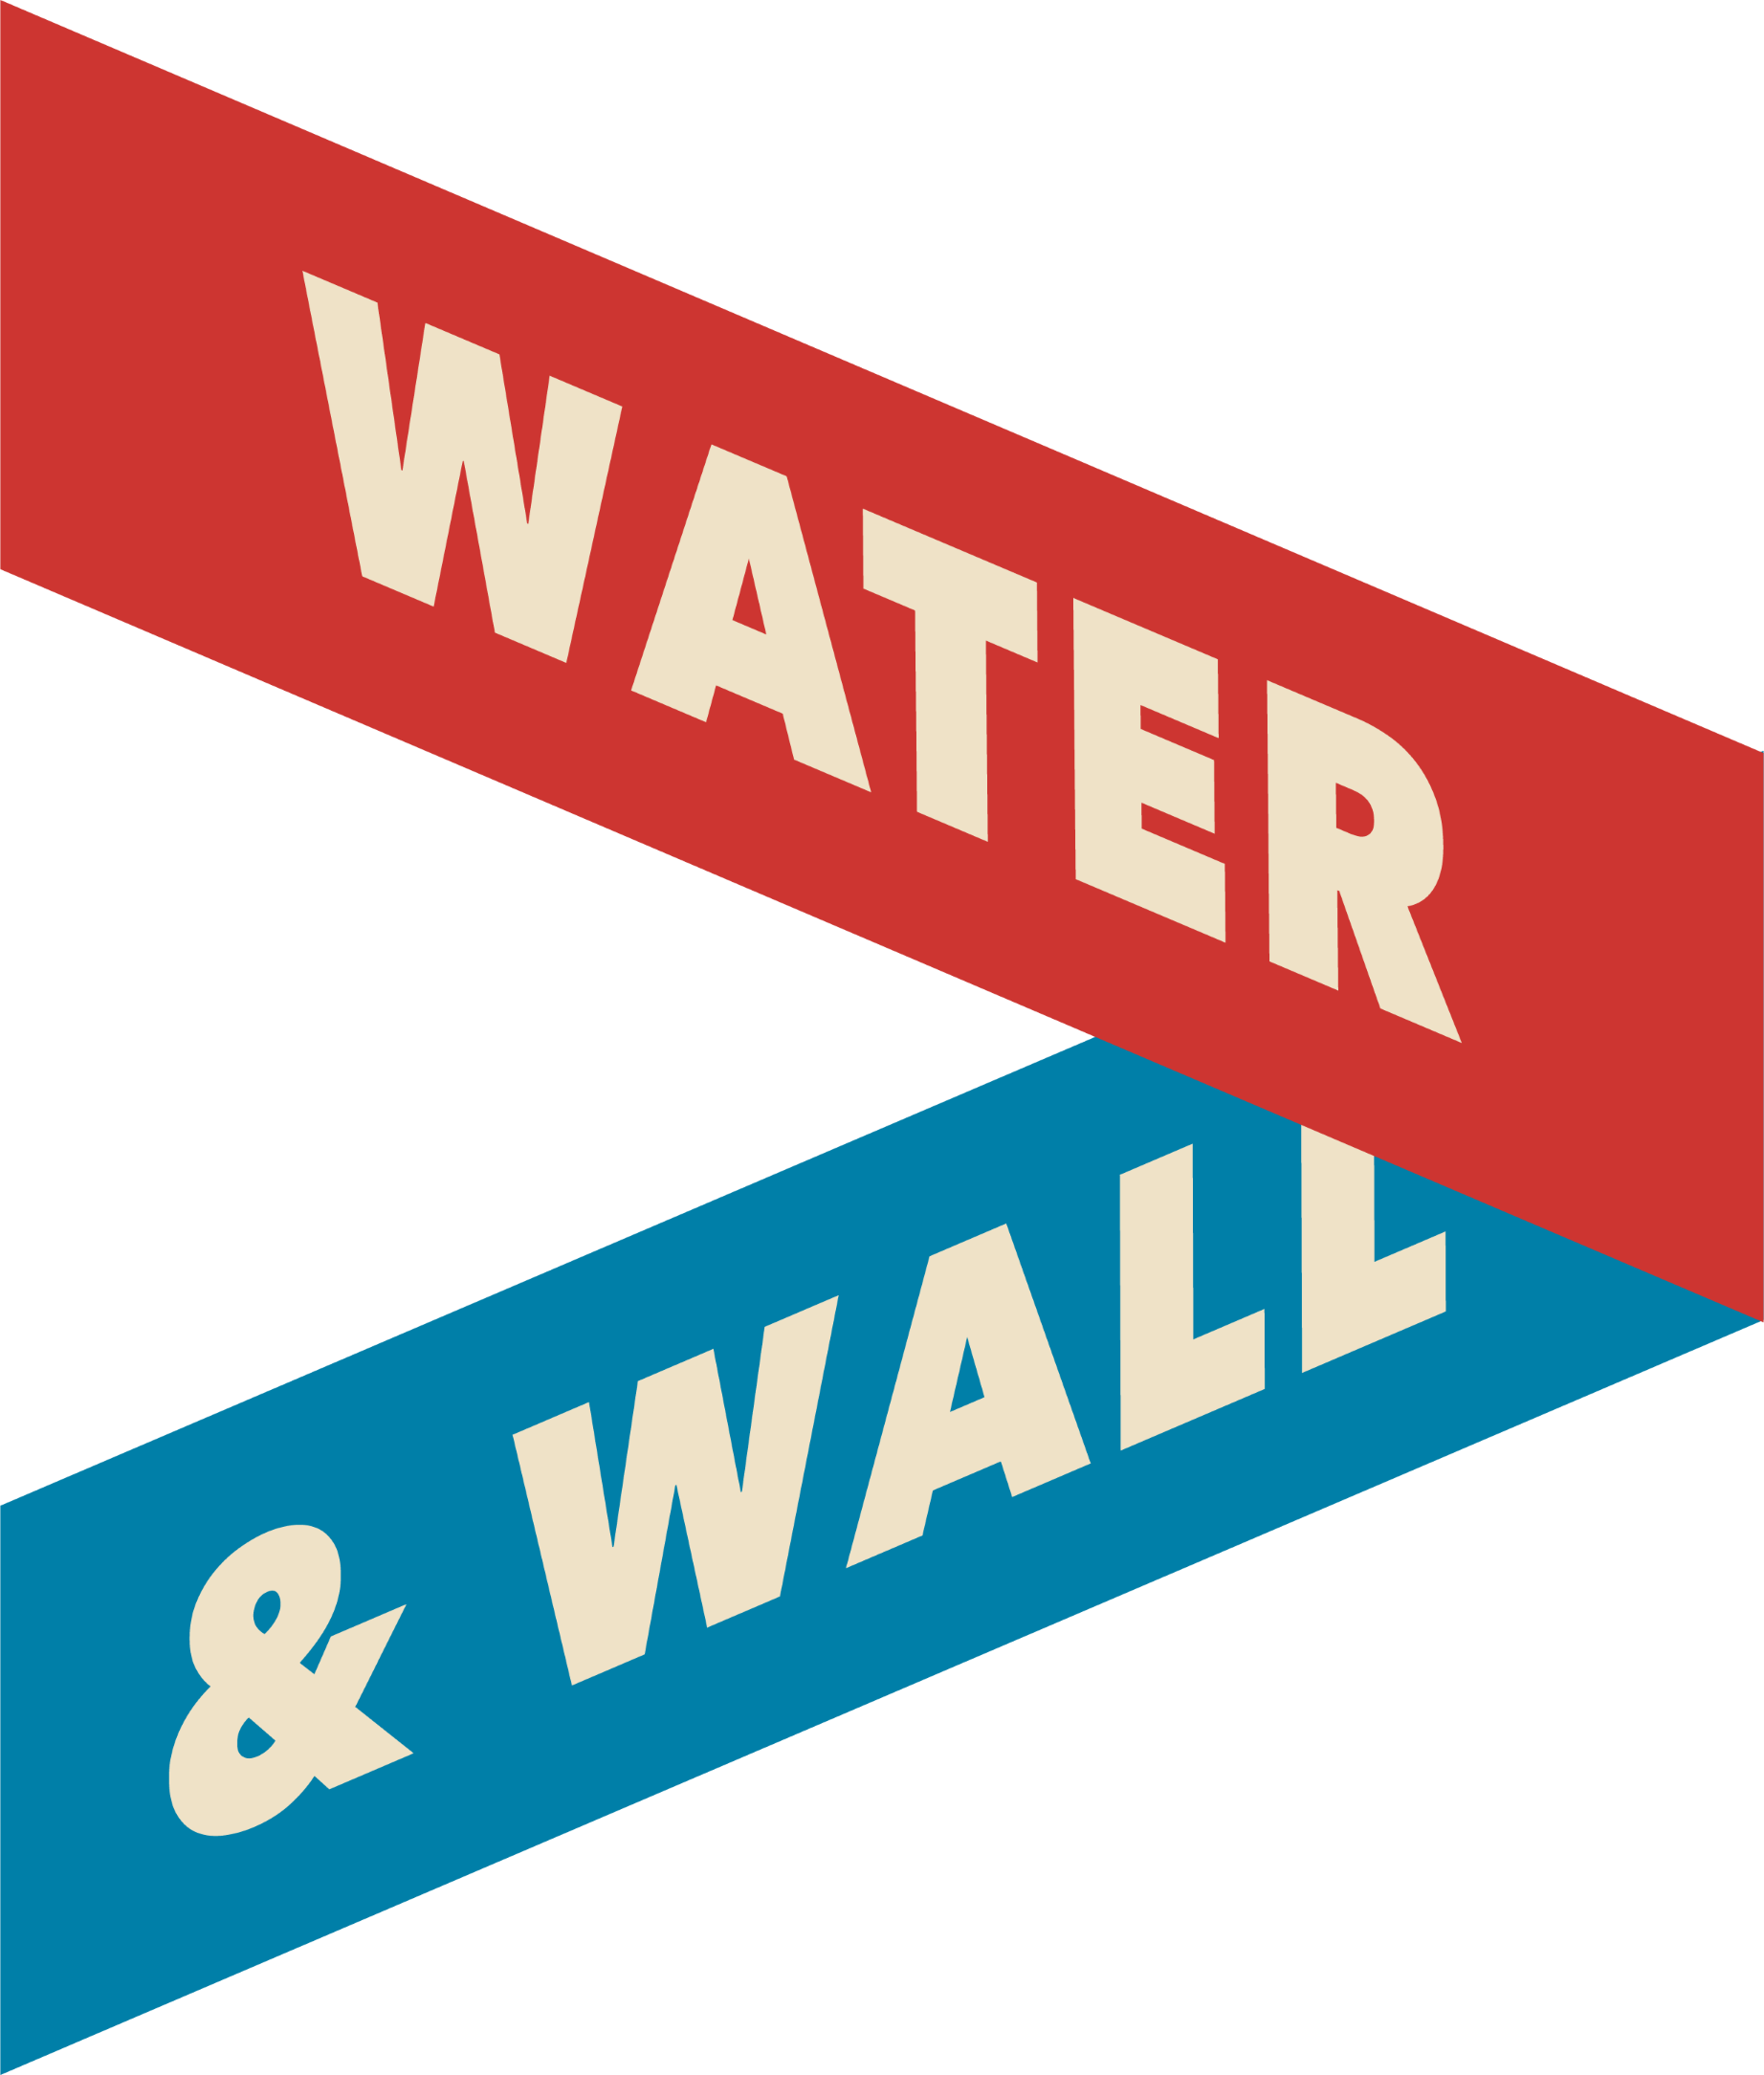 Water & Wall logo